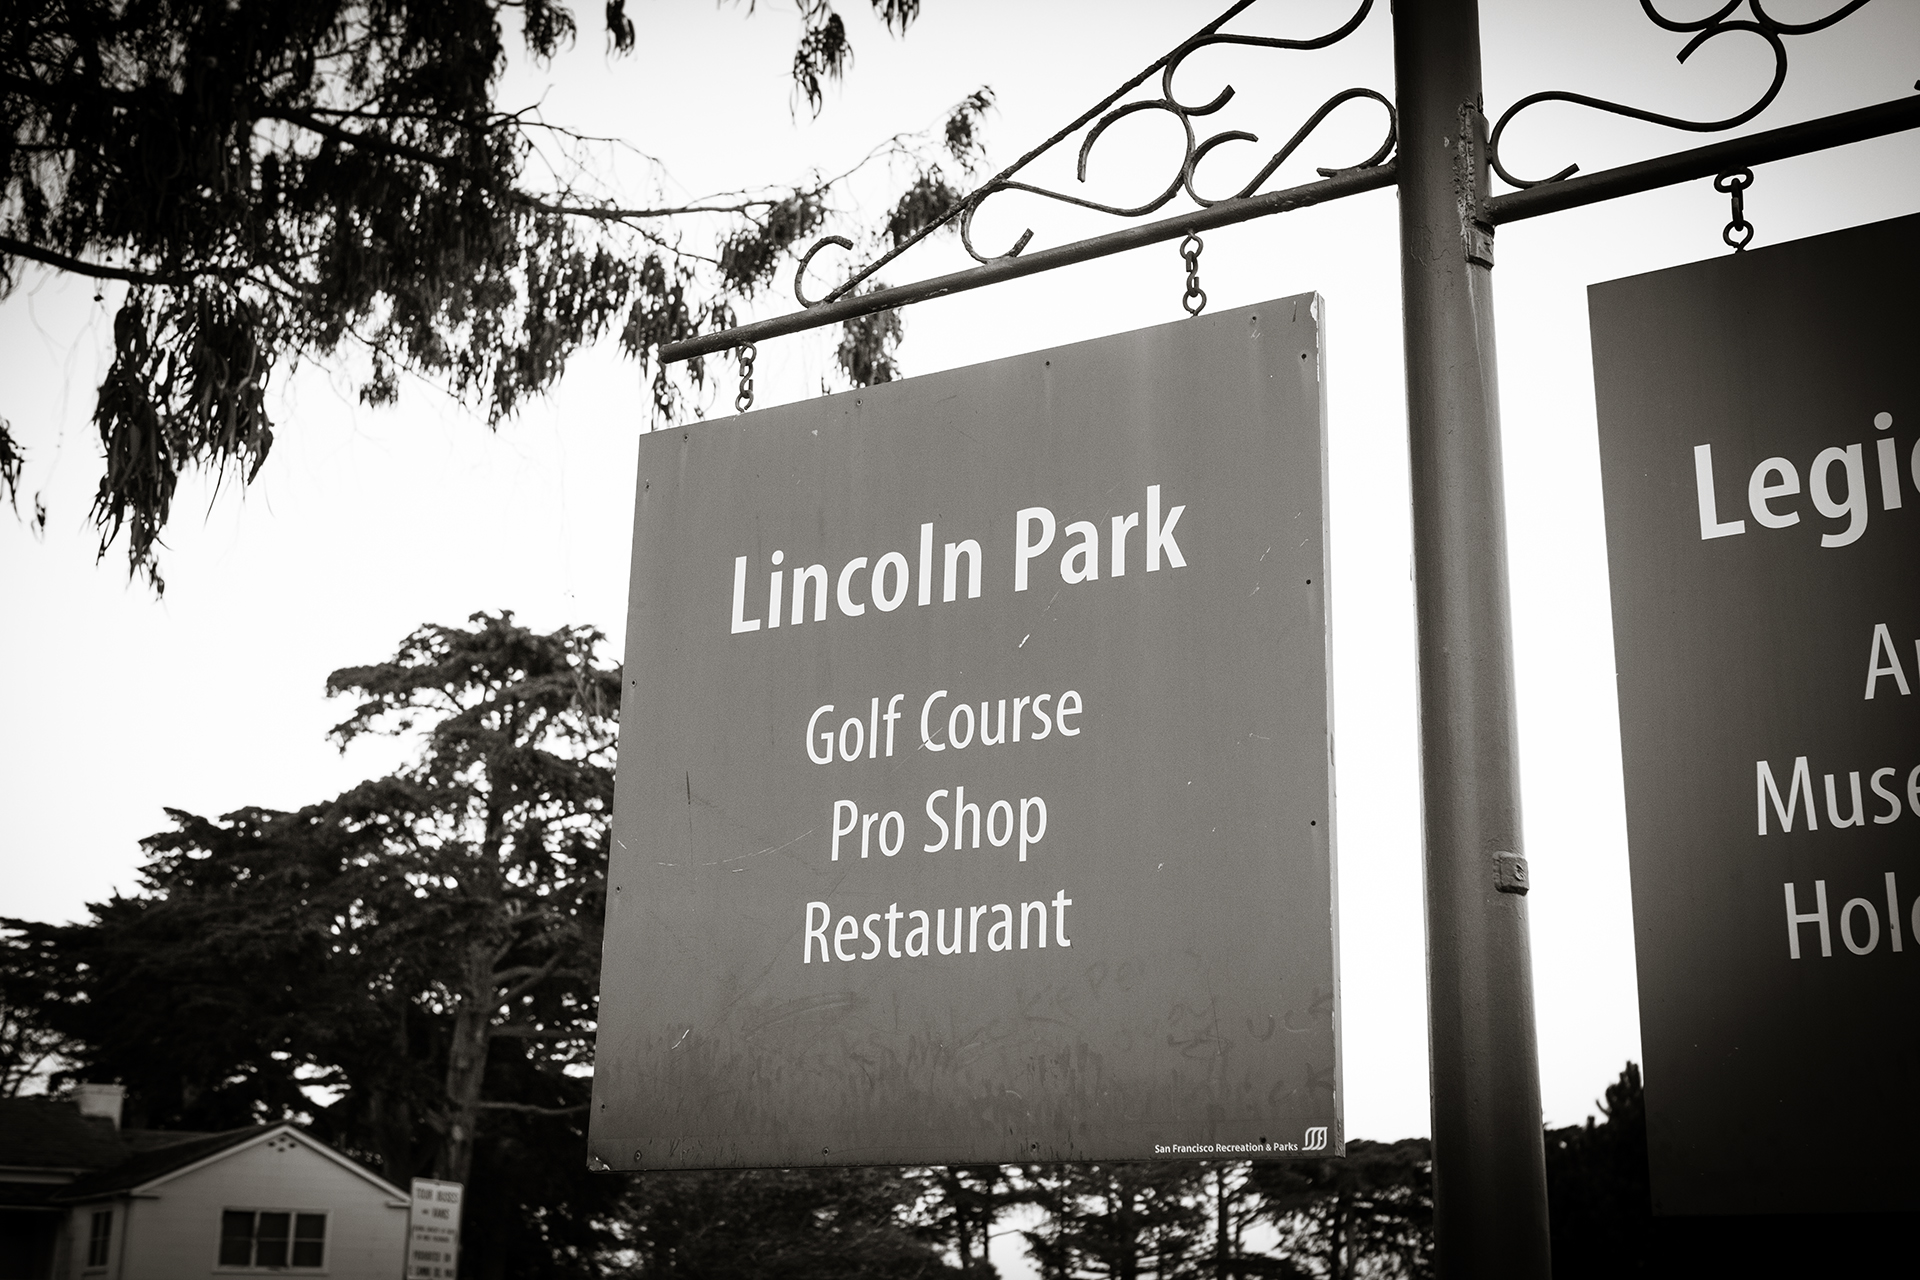 Lincoln Park